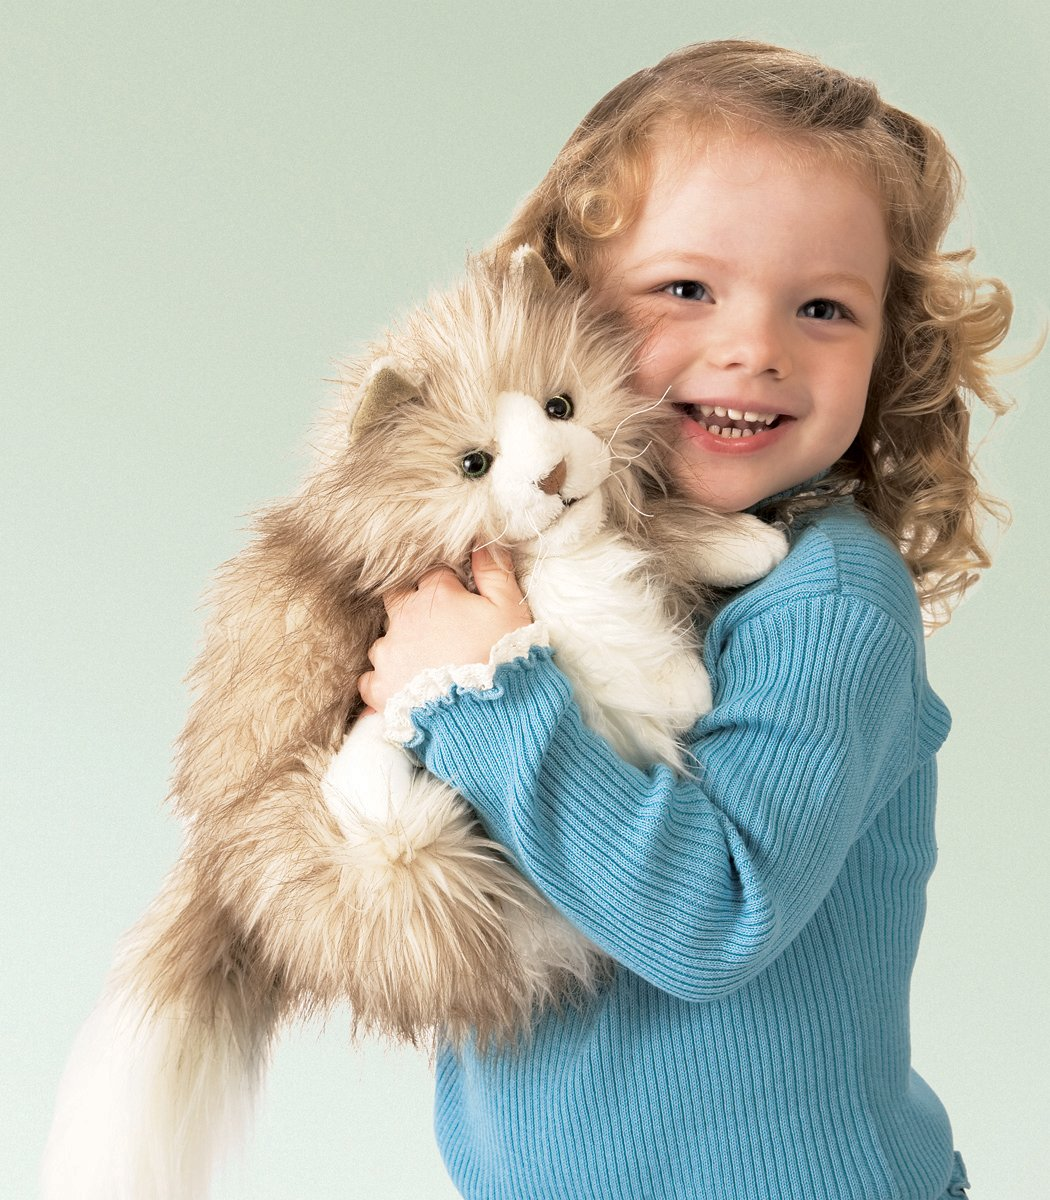 Amazon.com: Folkmanis Fluffy Cat Hand Puppet: Toys & Games